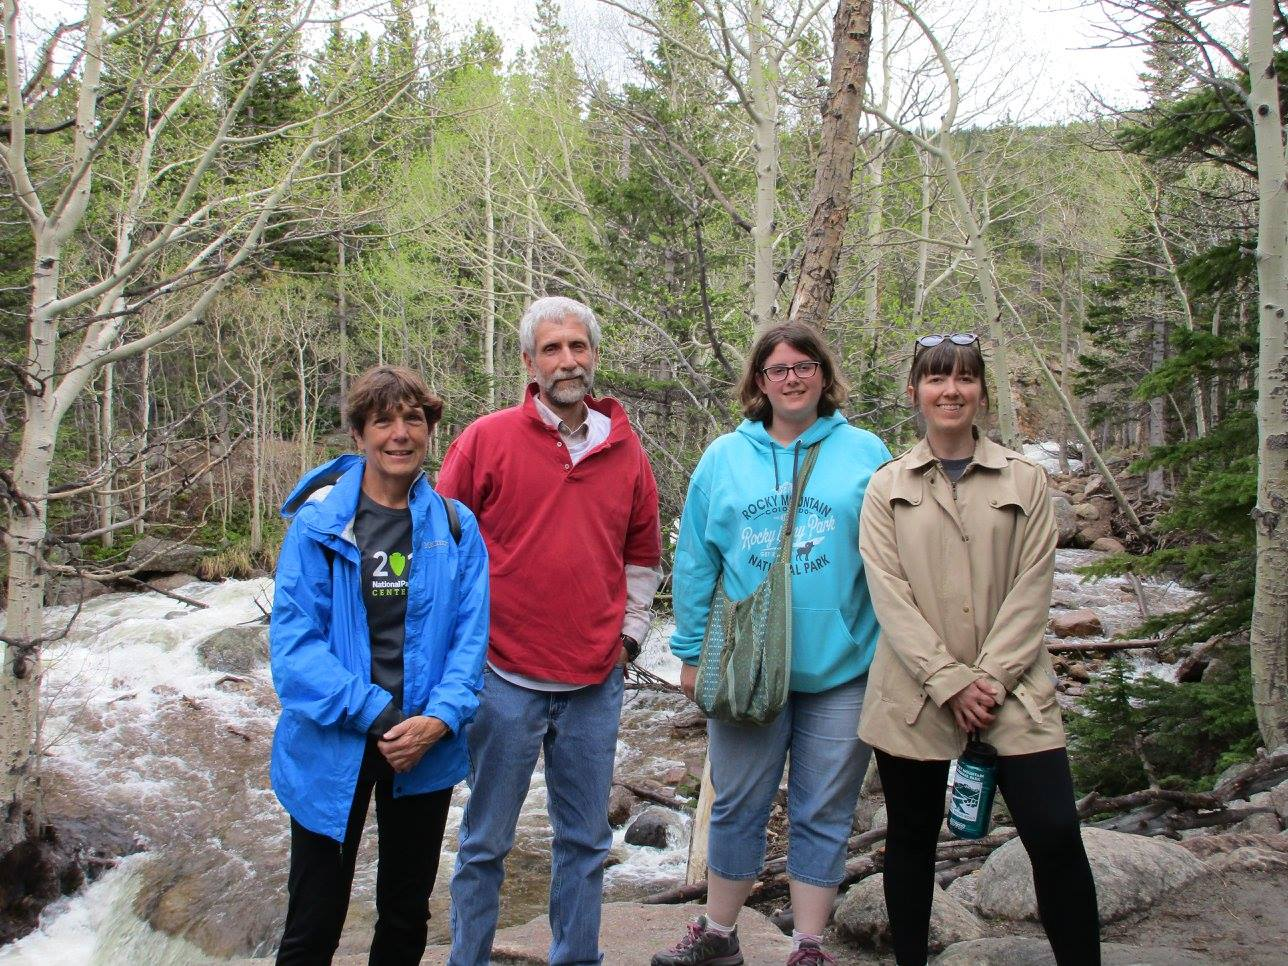 AAPB Team stands amid a forest area in the Rocky Mountains.